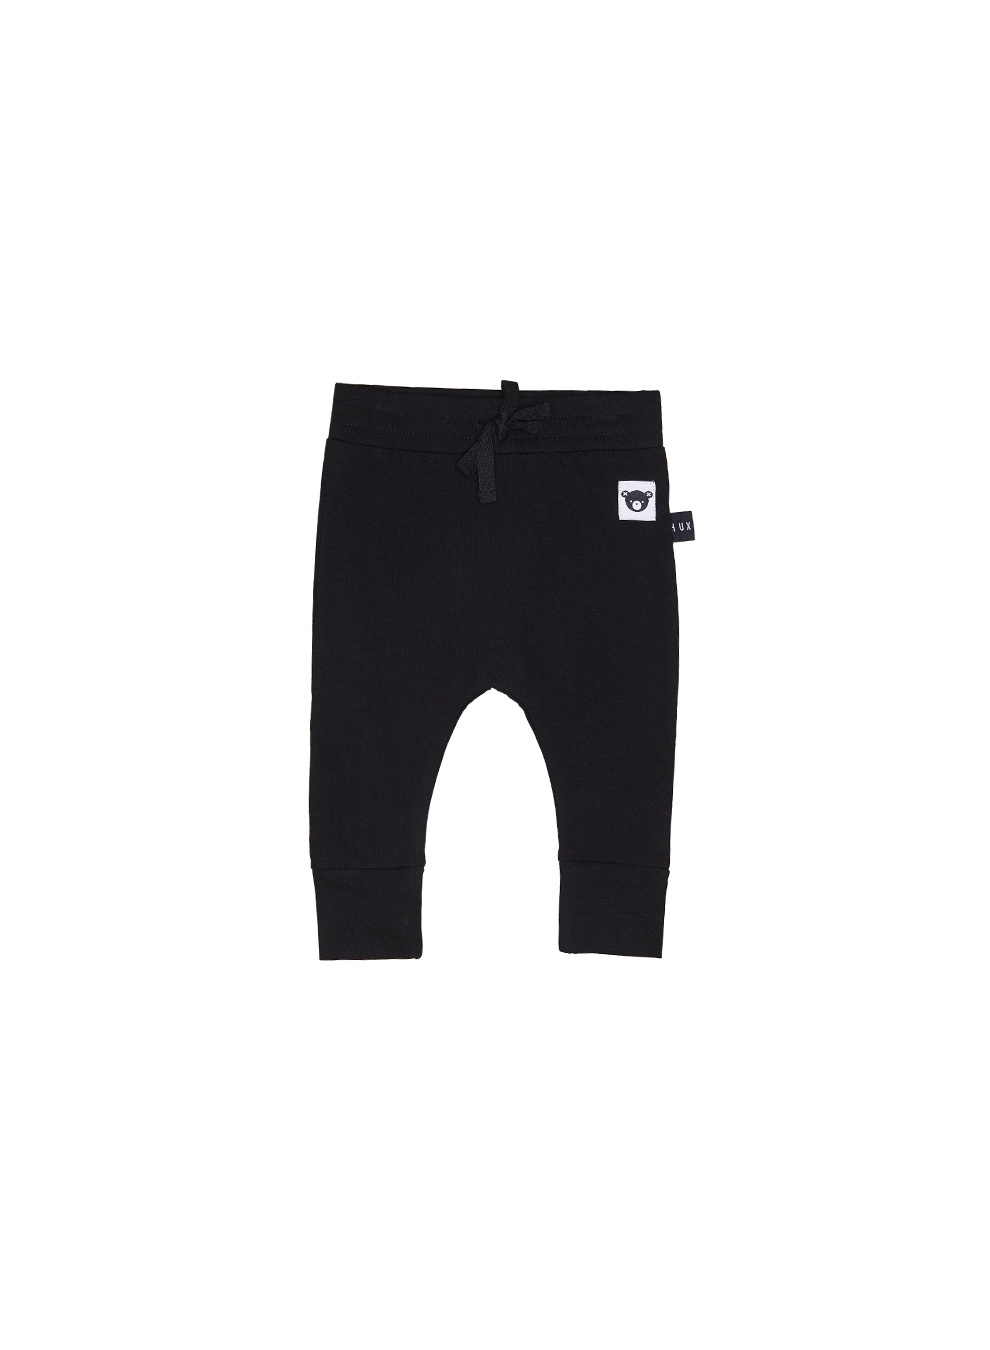 BLACK DROP CROTCH FLEECE PANT KIDS